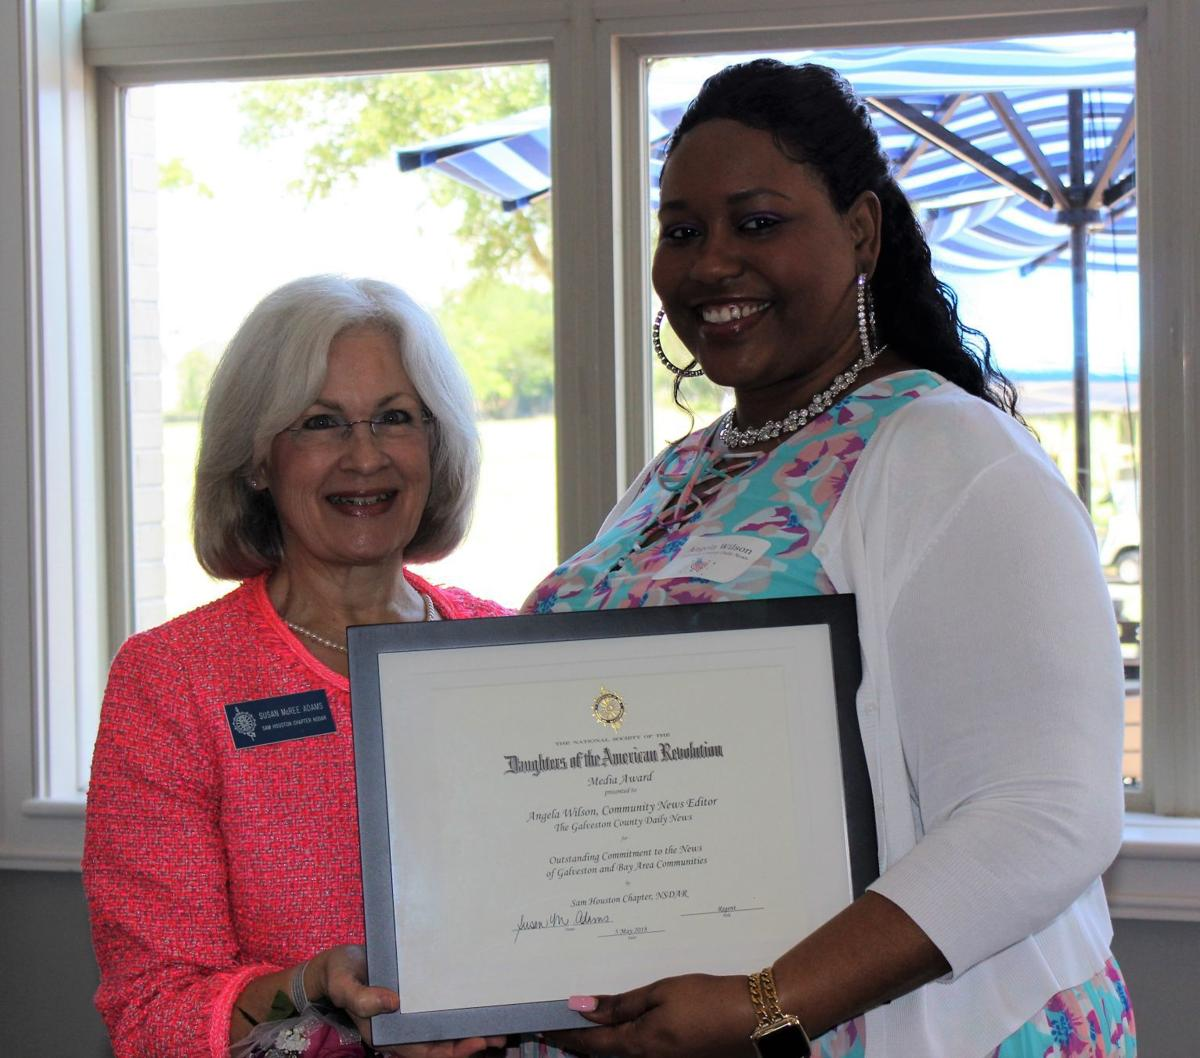 Angela Wilson honored with media award